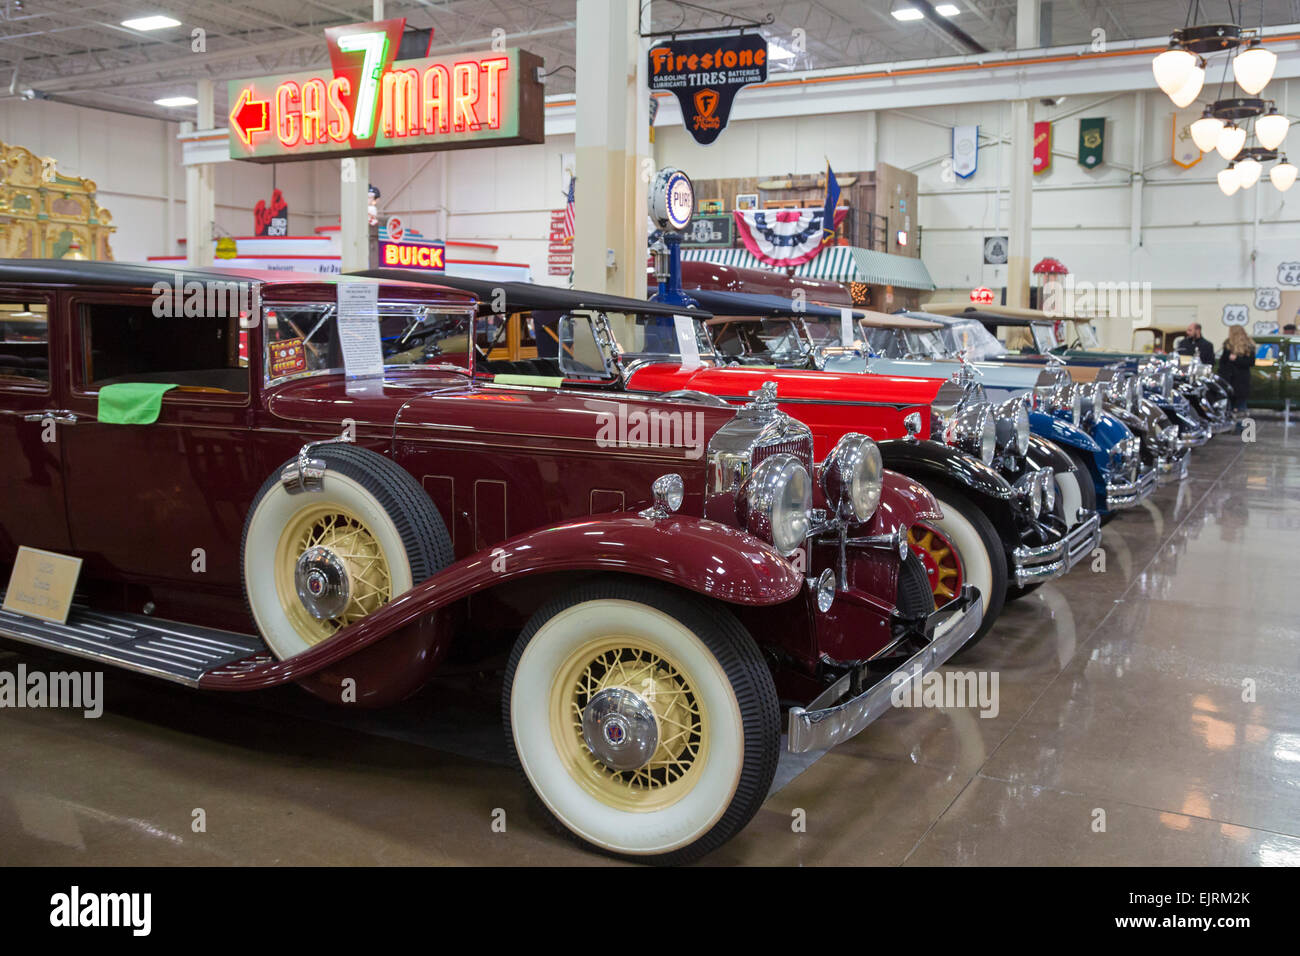 Antique Automobiles Stock Photos & Antique Automobiles Stock Images ...